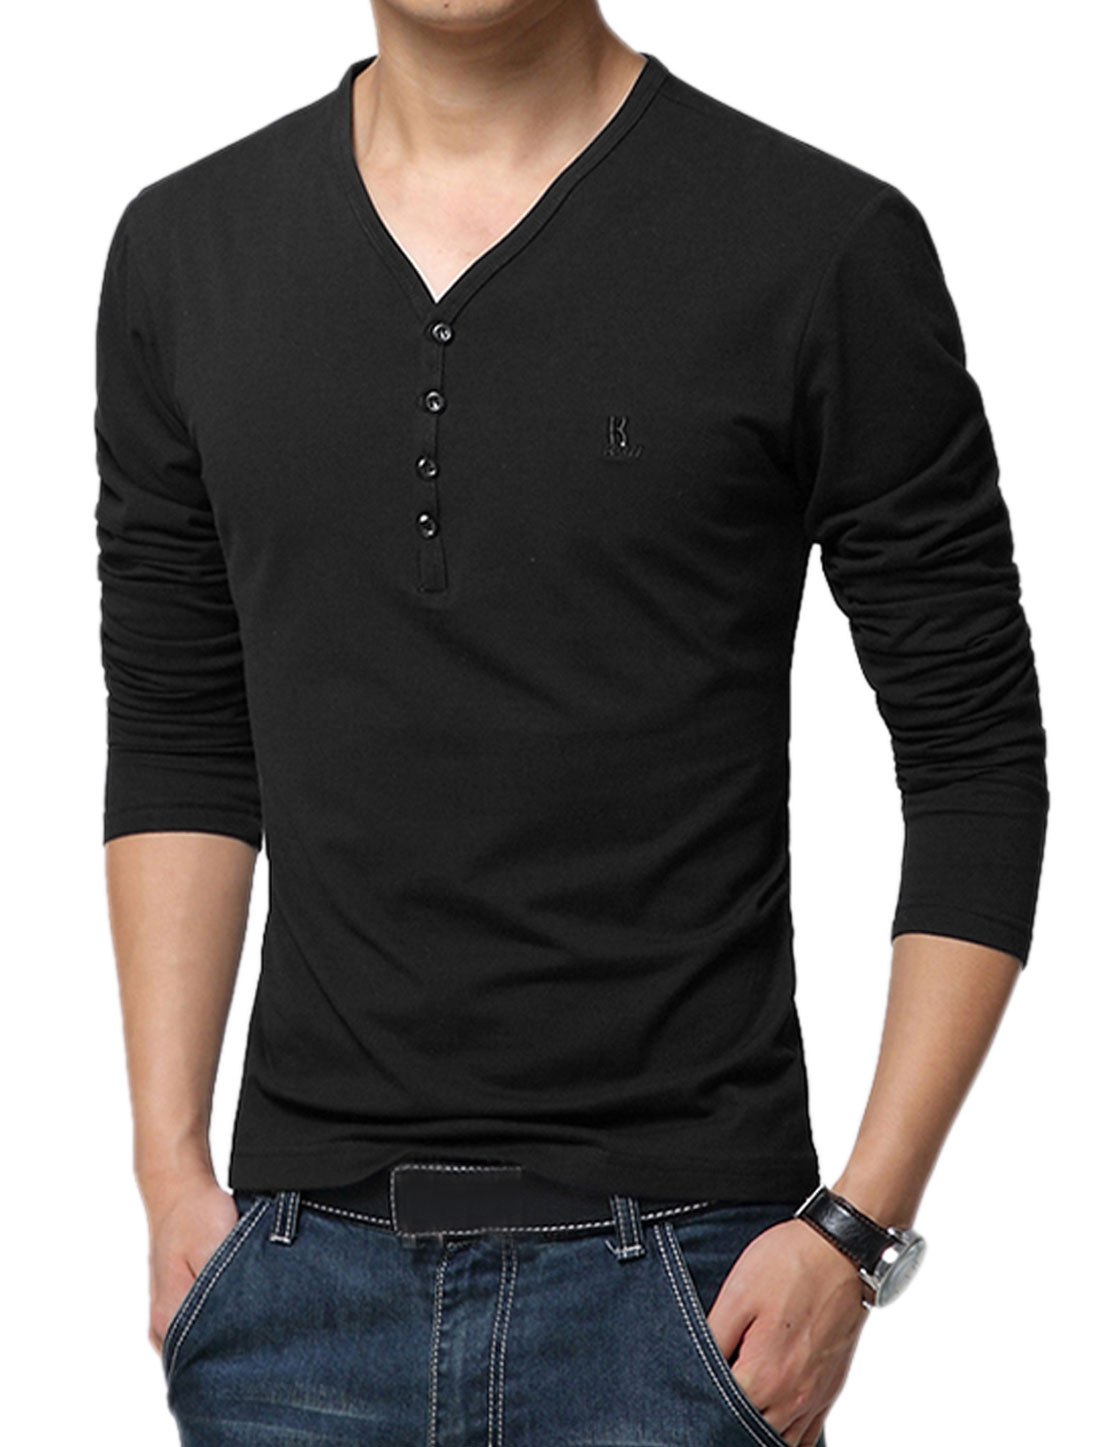 Men V Neckline Long Sleeves Buttons Decor T-Shirts Black M